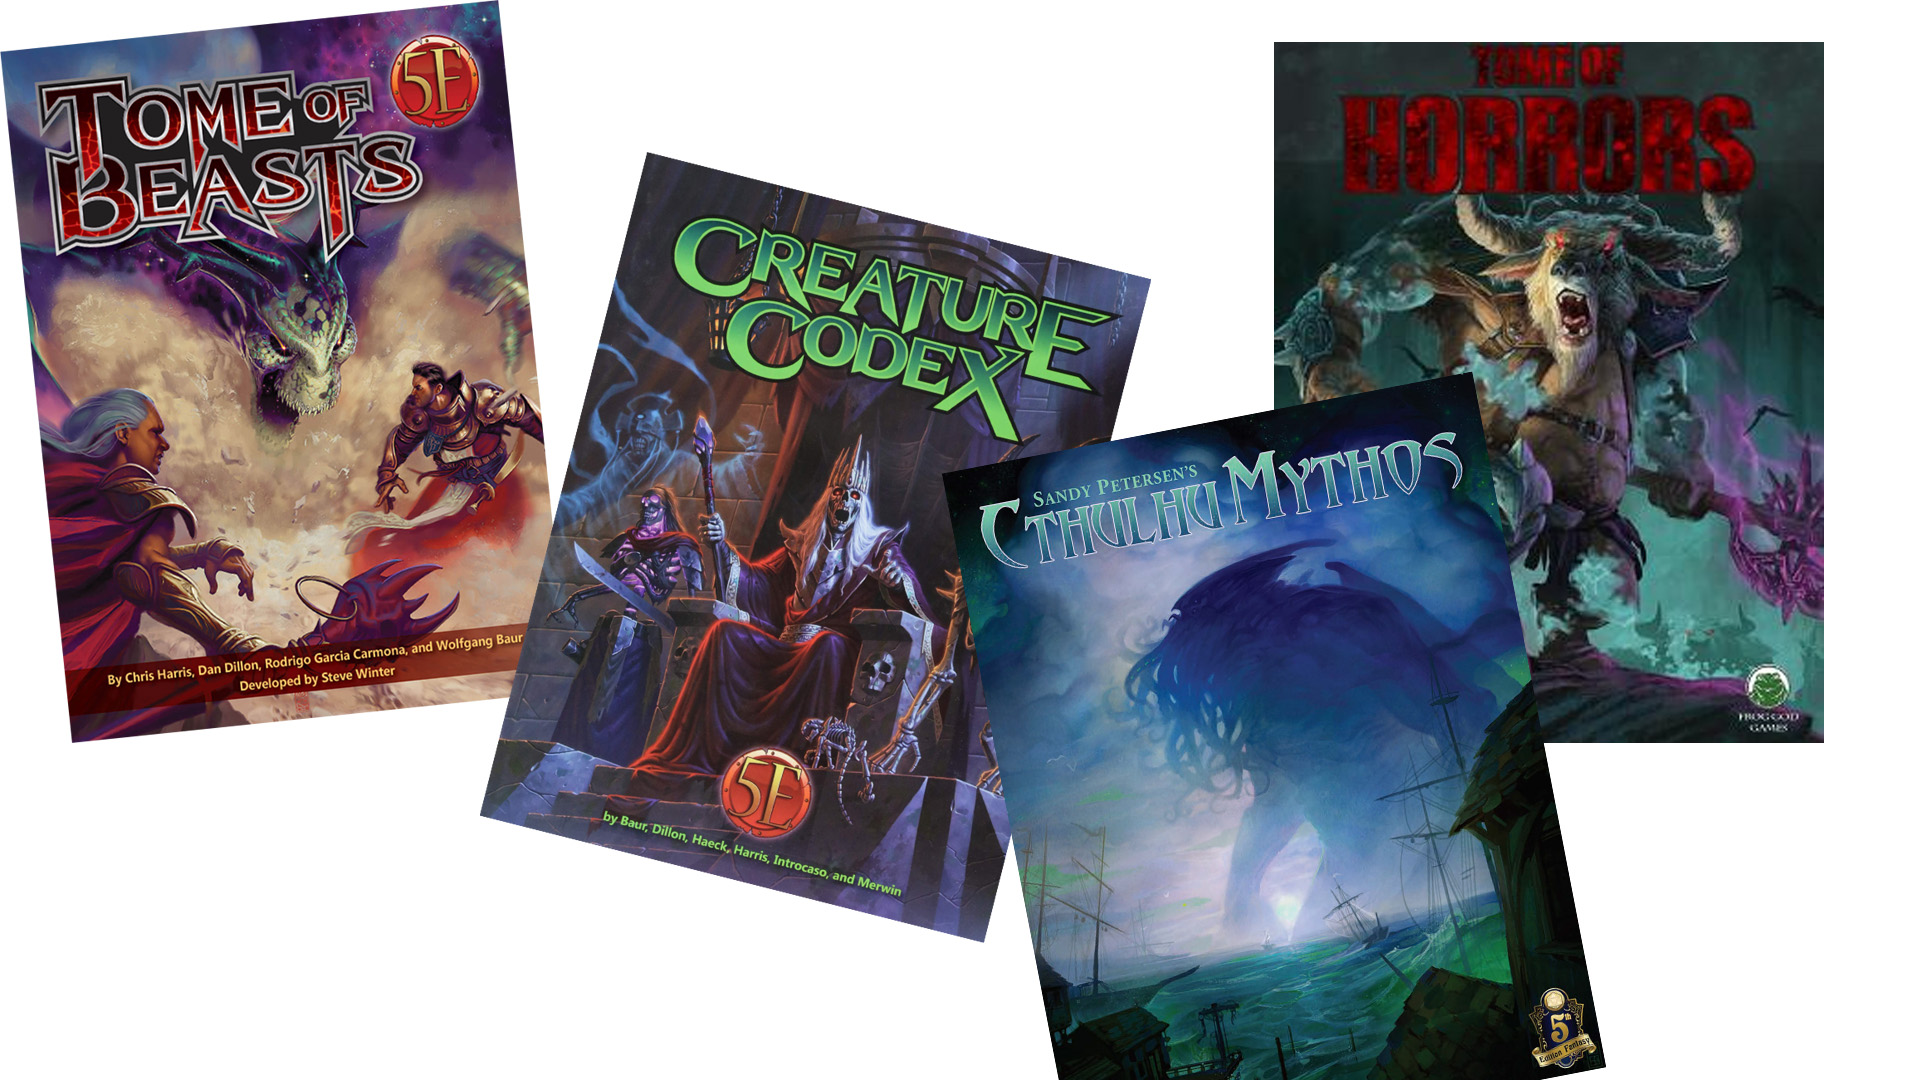 5E D&D Monster Books from Kobold Press, Frog God Games, and Petersen Games